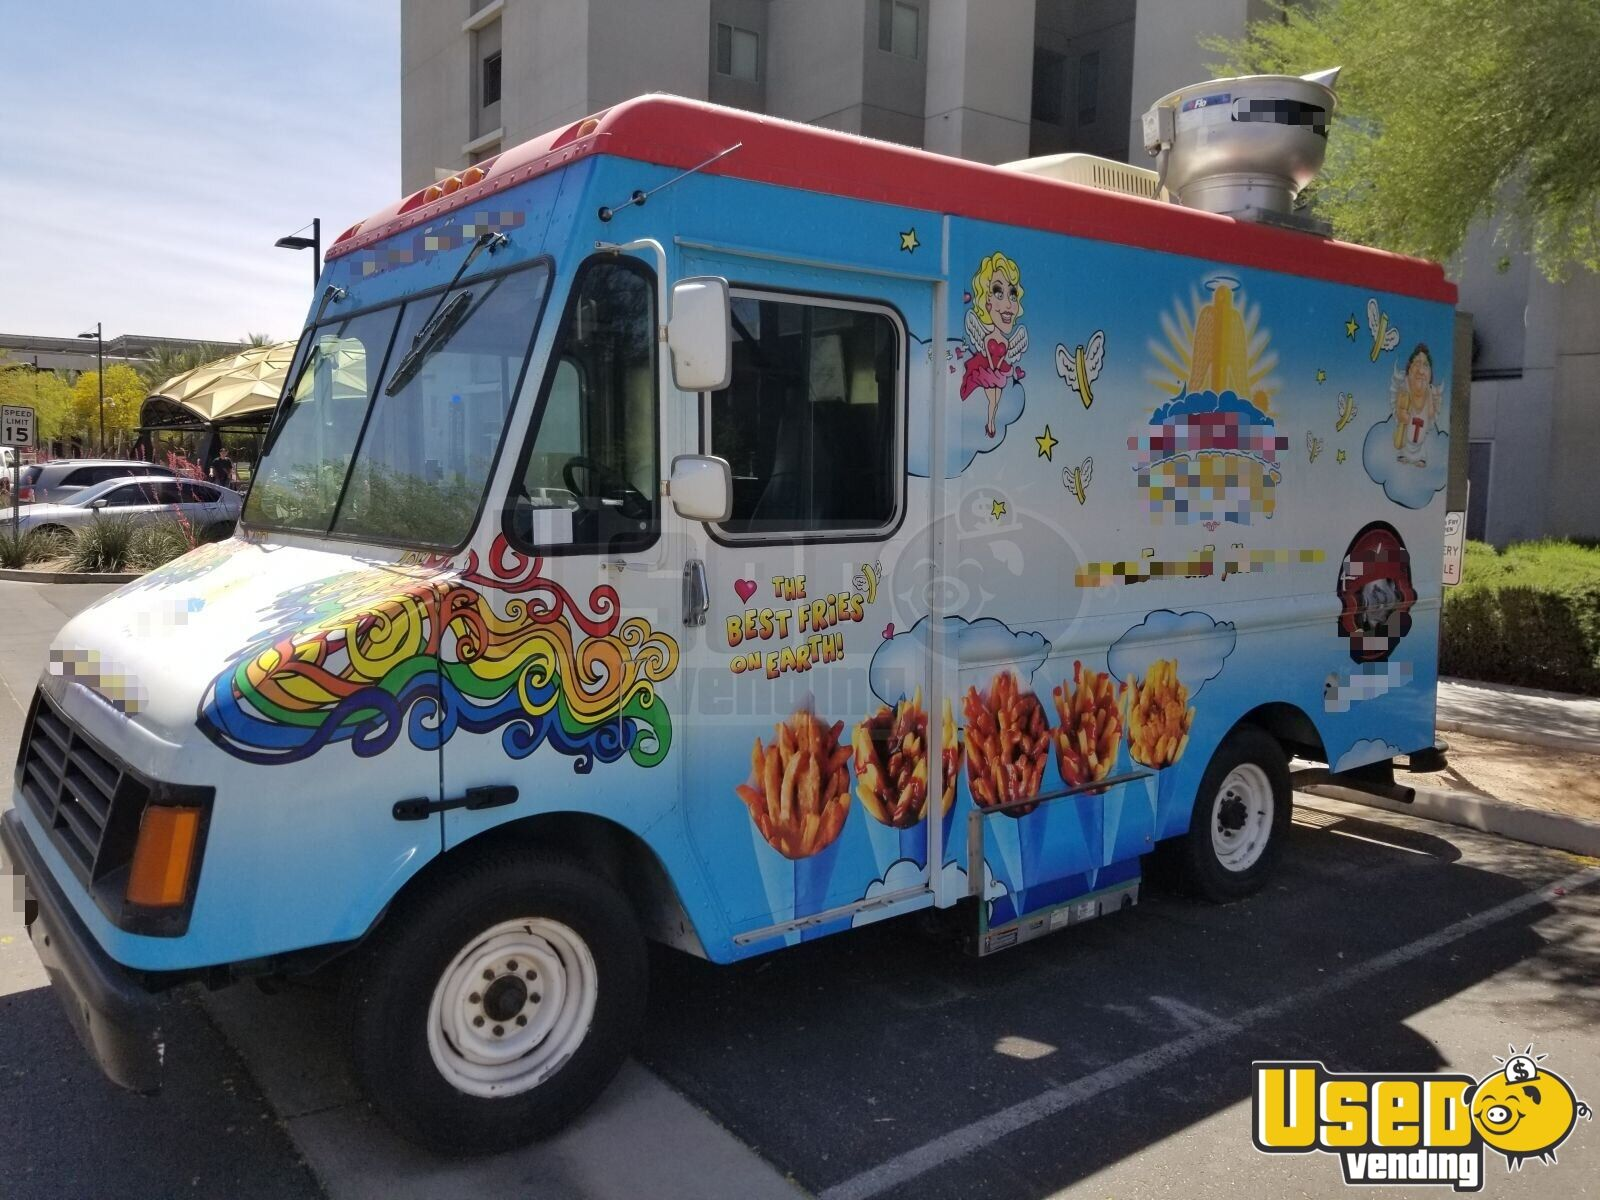 2000 Ford Workhouse Food Truck Concession Window California Gas Engine for Sale - 2